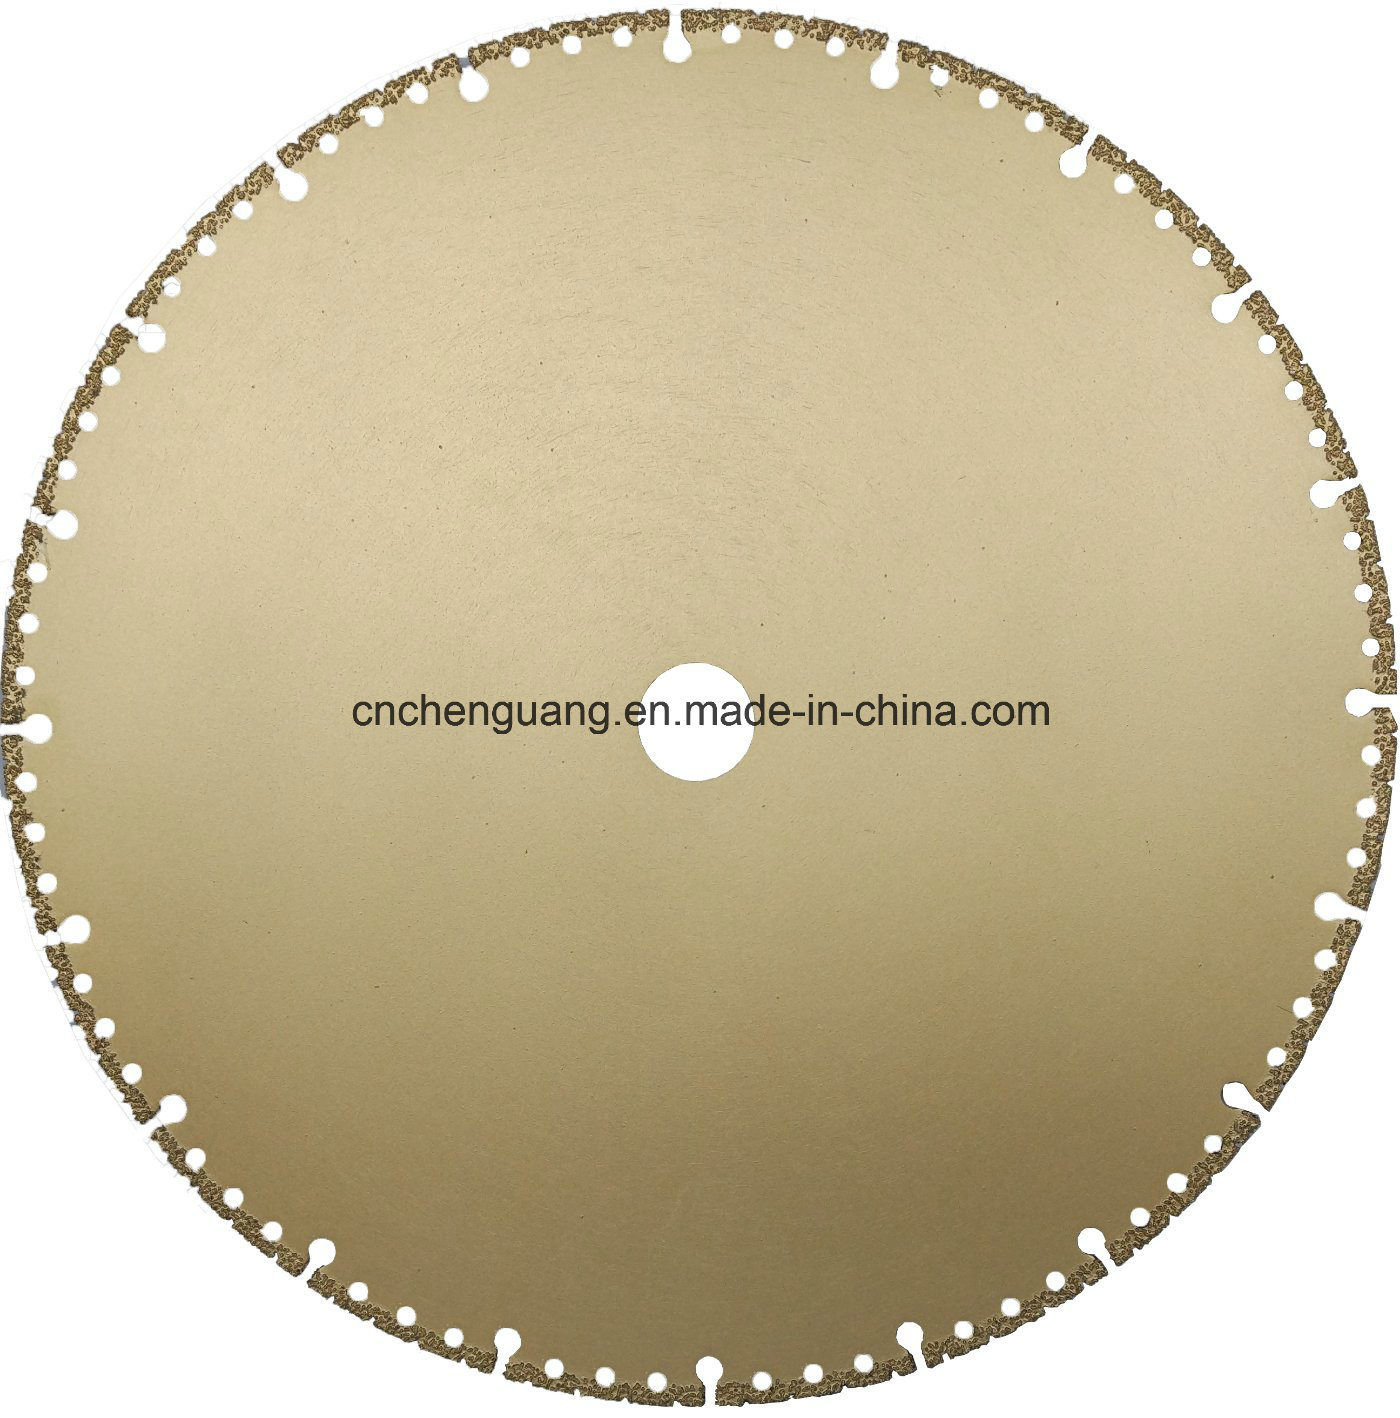 Ceramic Concrete Granite Marble Stone Cutting Diamond Saw Blade of High Efficient High Speed